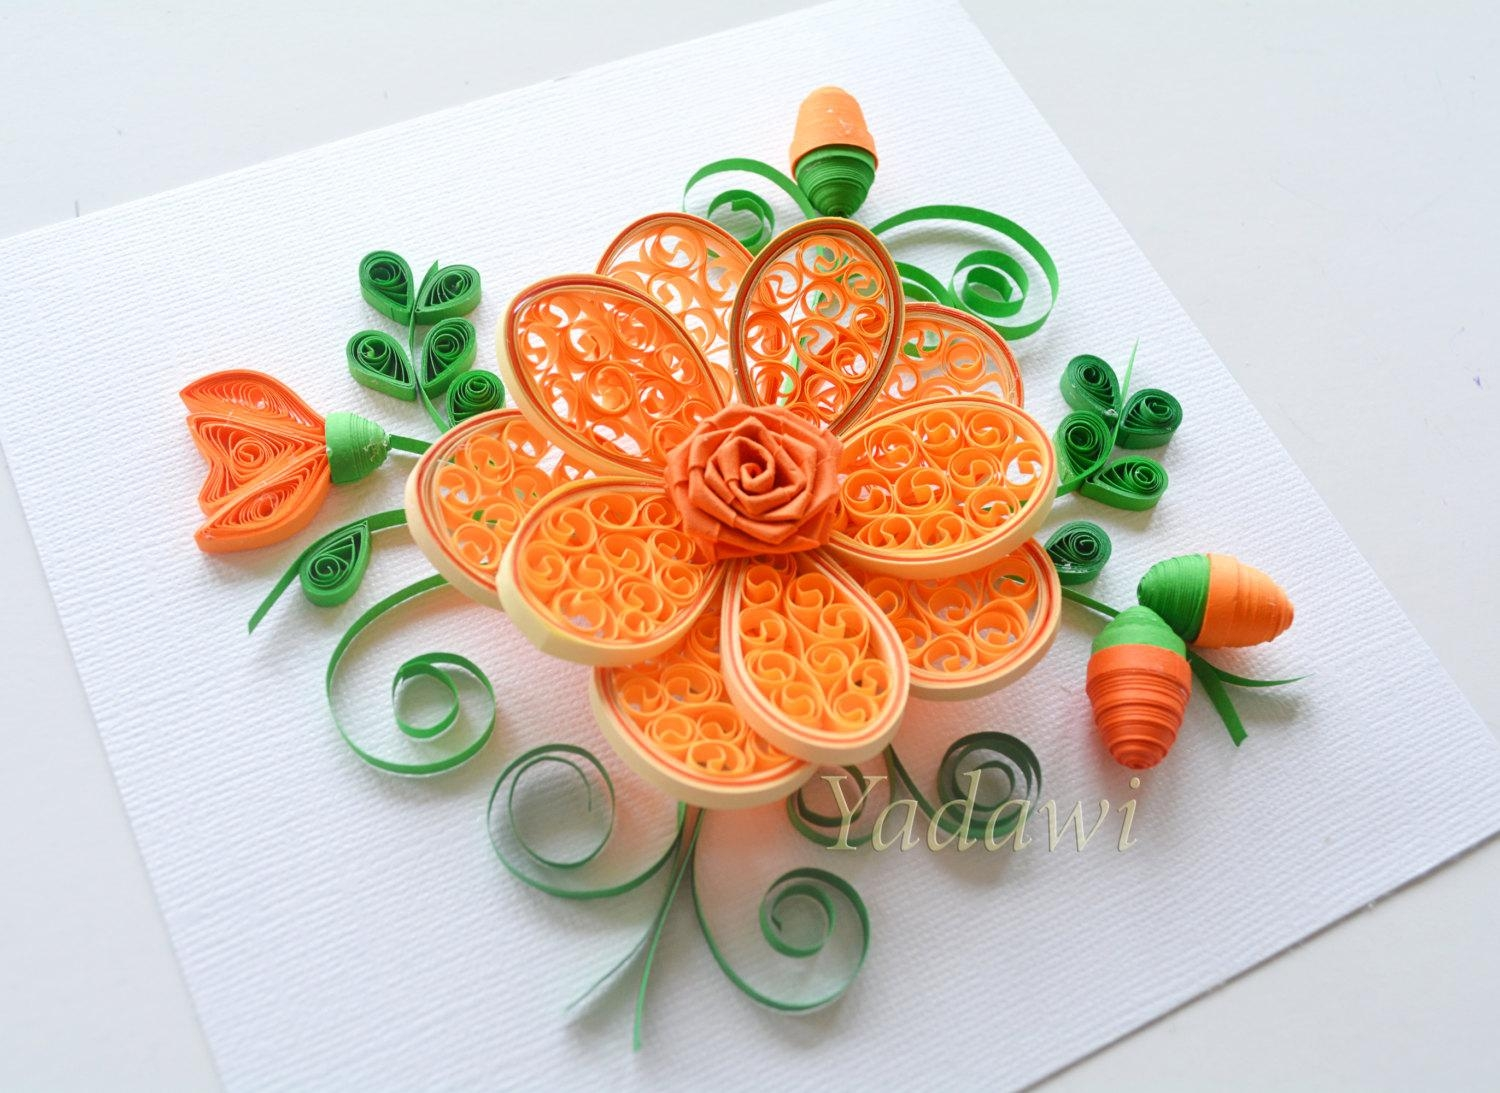 Quilled Paper Art Quilled Flower Paper Wall Art 3D Paper With Regard To 3D Paper Wall Art (Image 17 of 20)